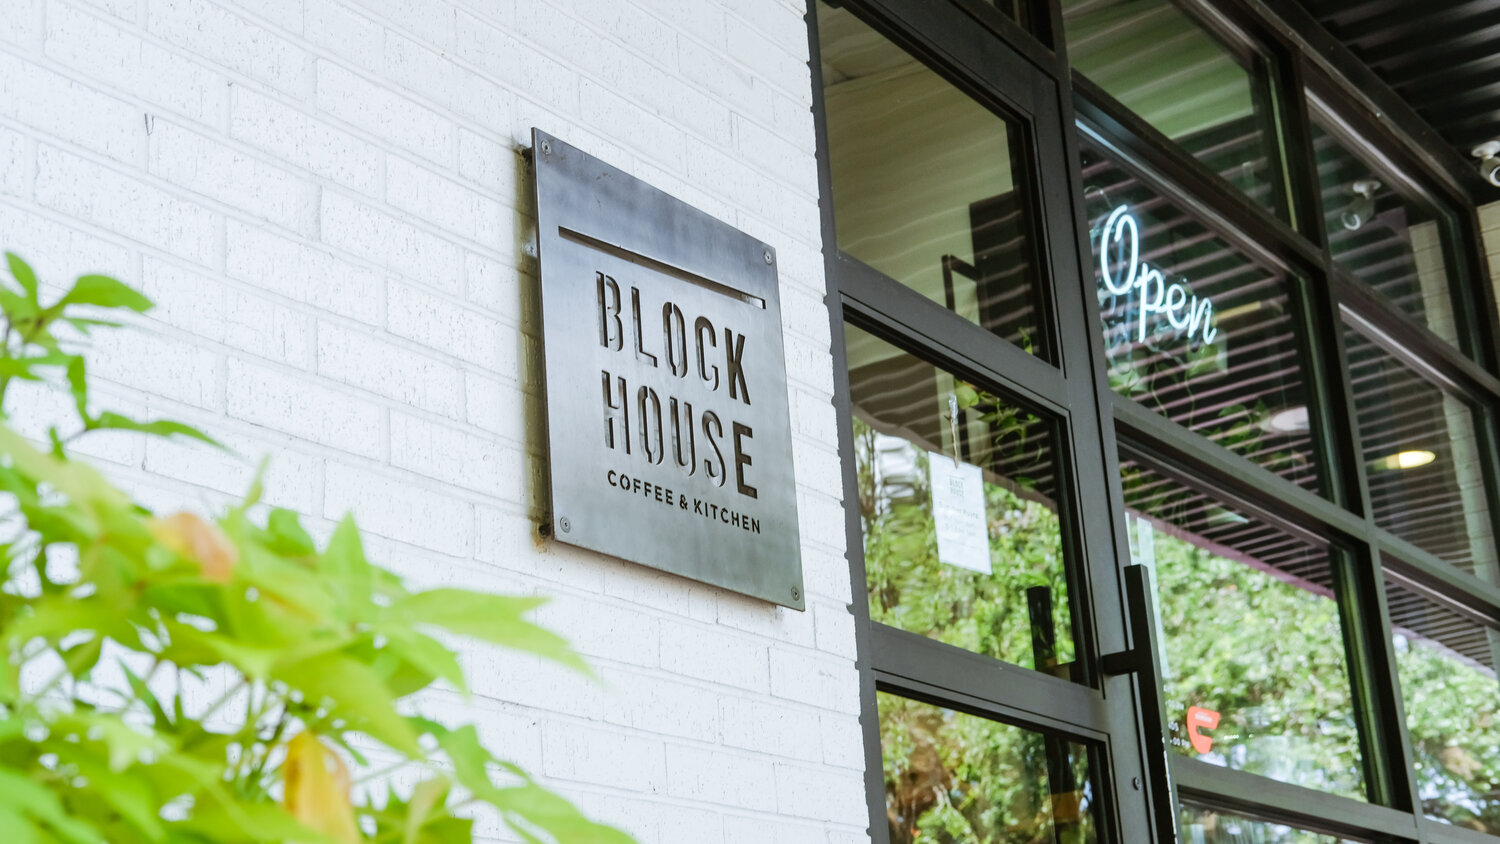 Blockhouse Coffee Kitchen